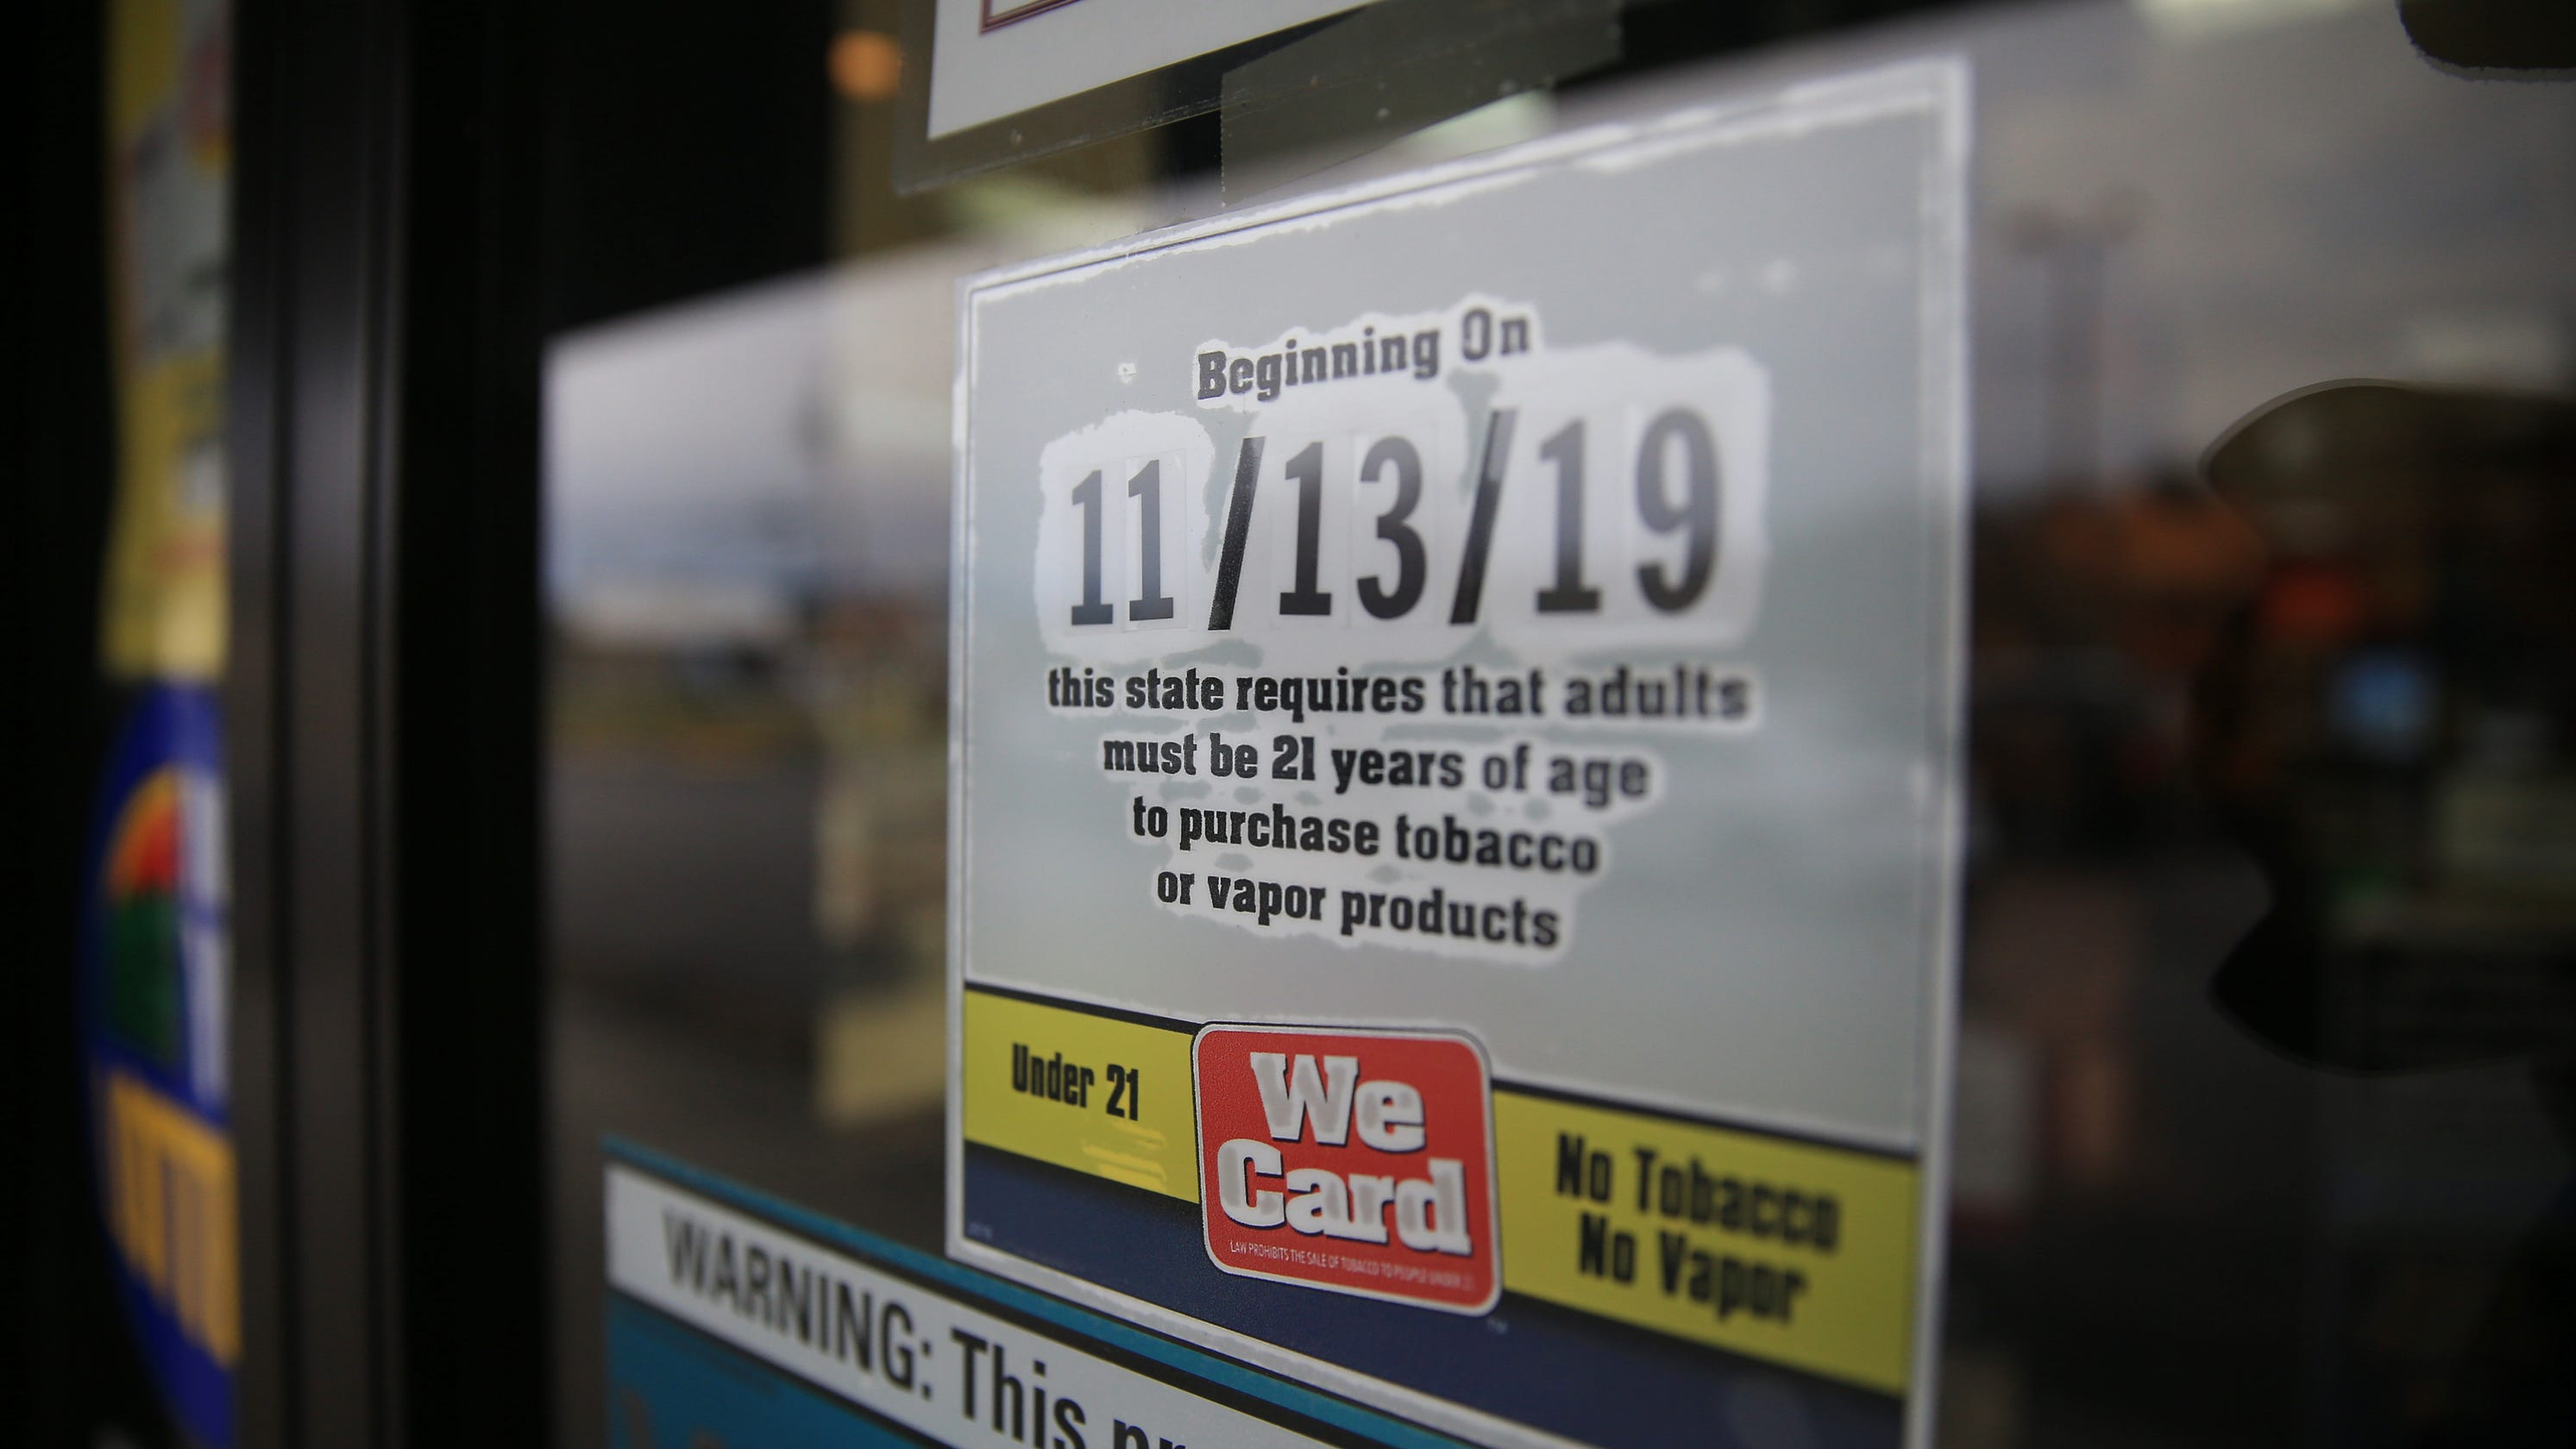 Shop owners react to raised smoking age across NYS